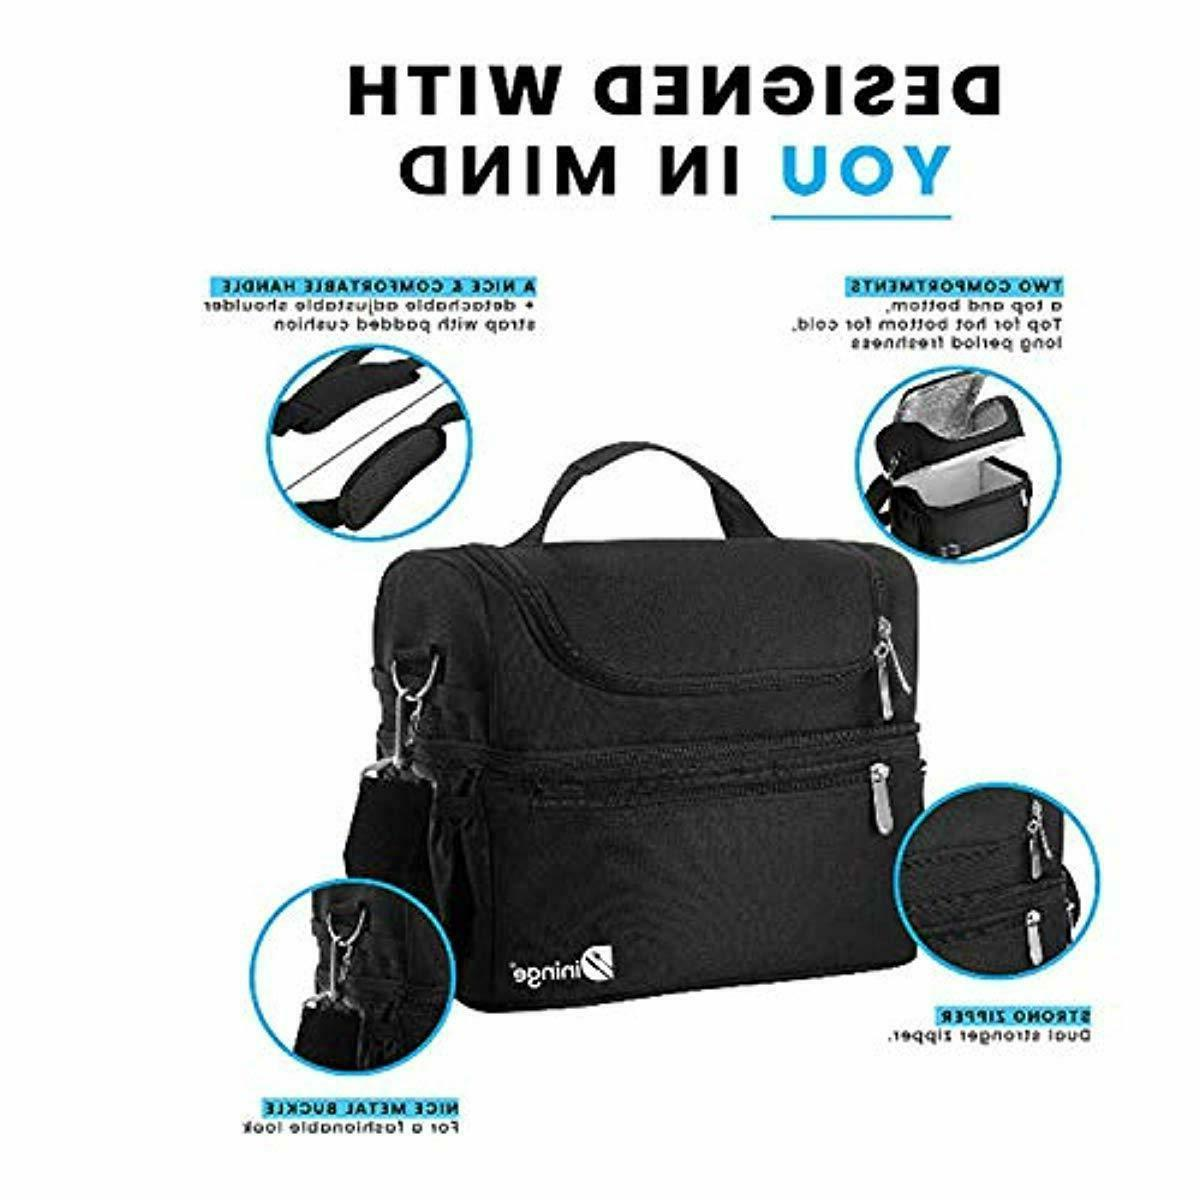 Lunch Box Insulated Bag Bag for Men, Women